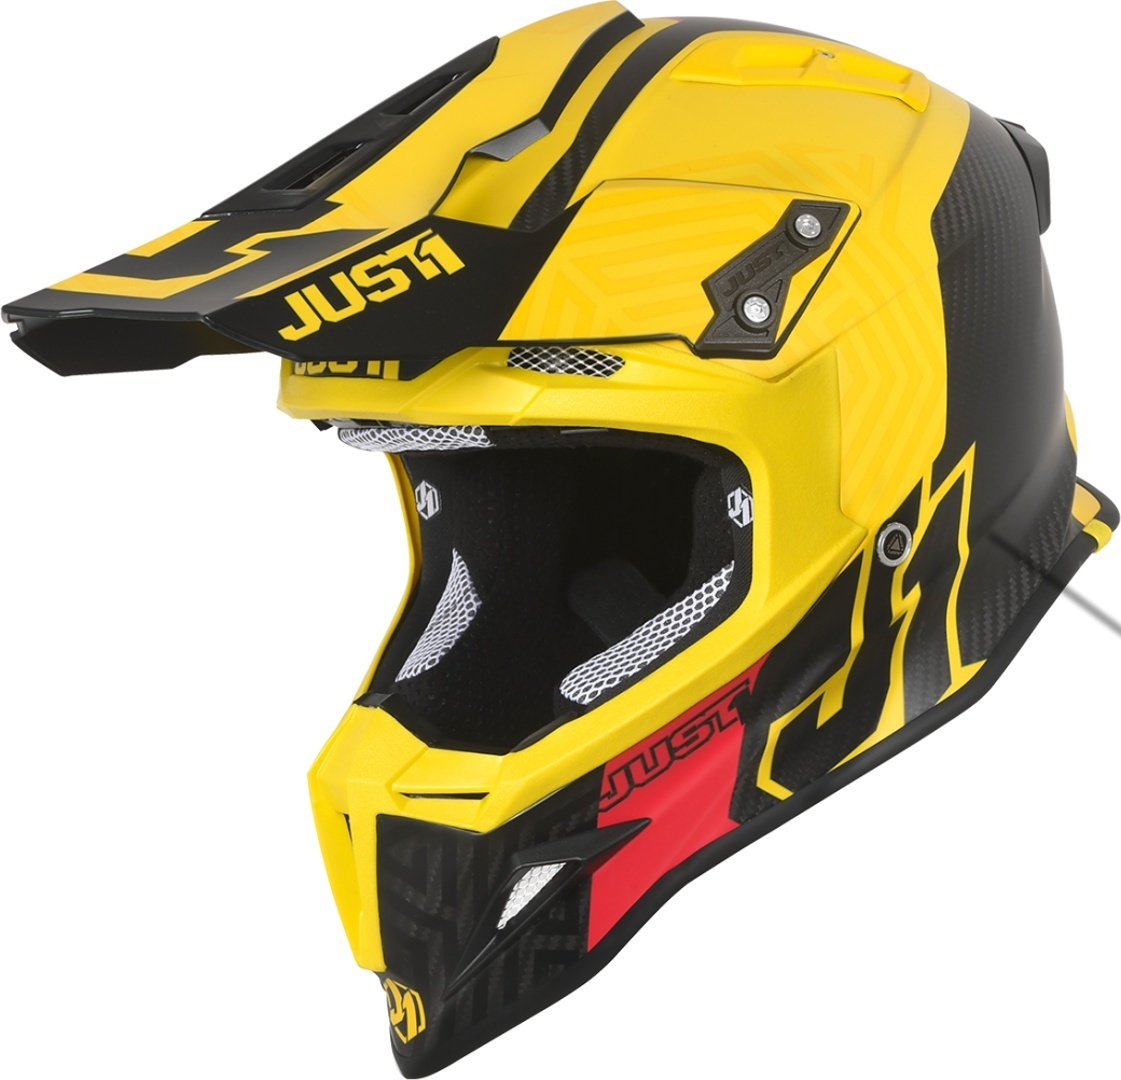 Just1 J12 Syncro Carbon Motocross Helm, schwarz-gelb, Größe XL, schwarz-gelb, Größe XL